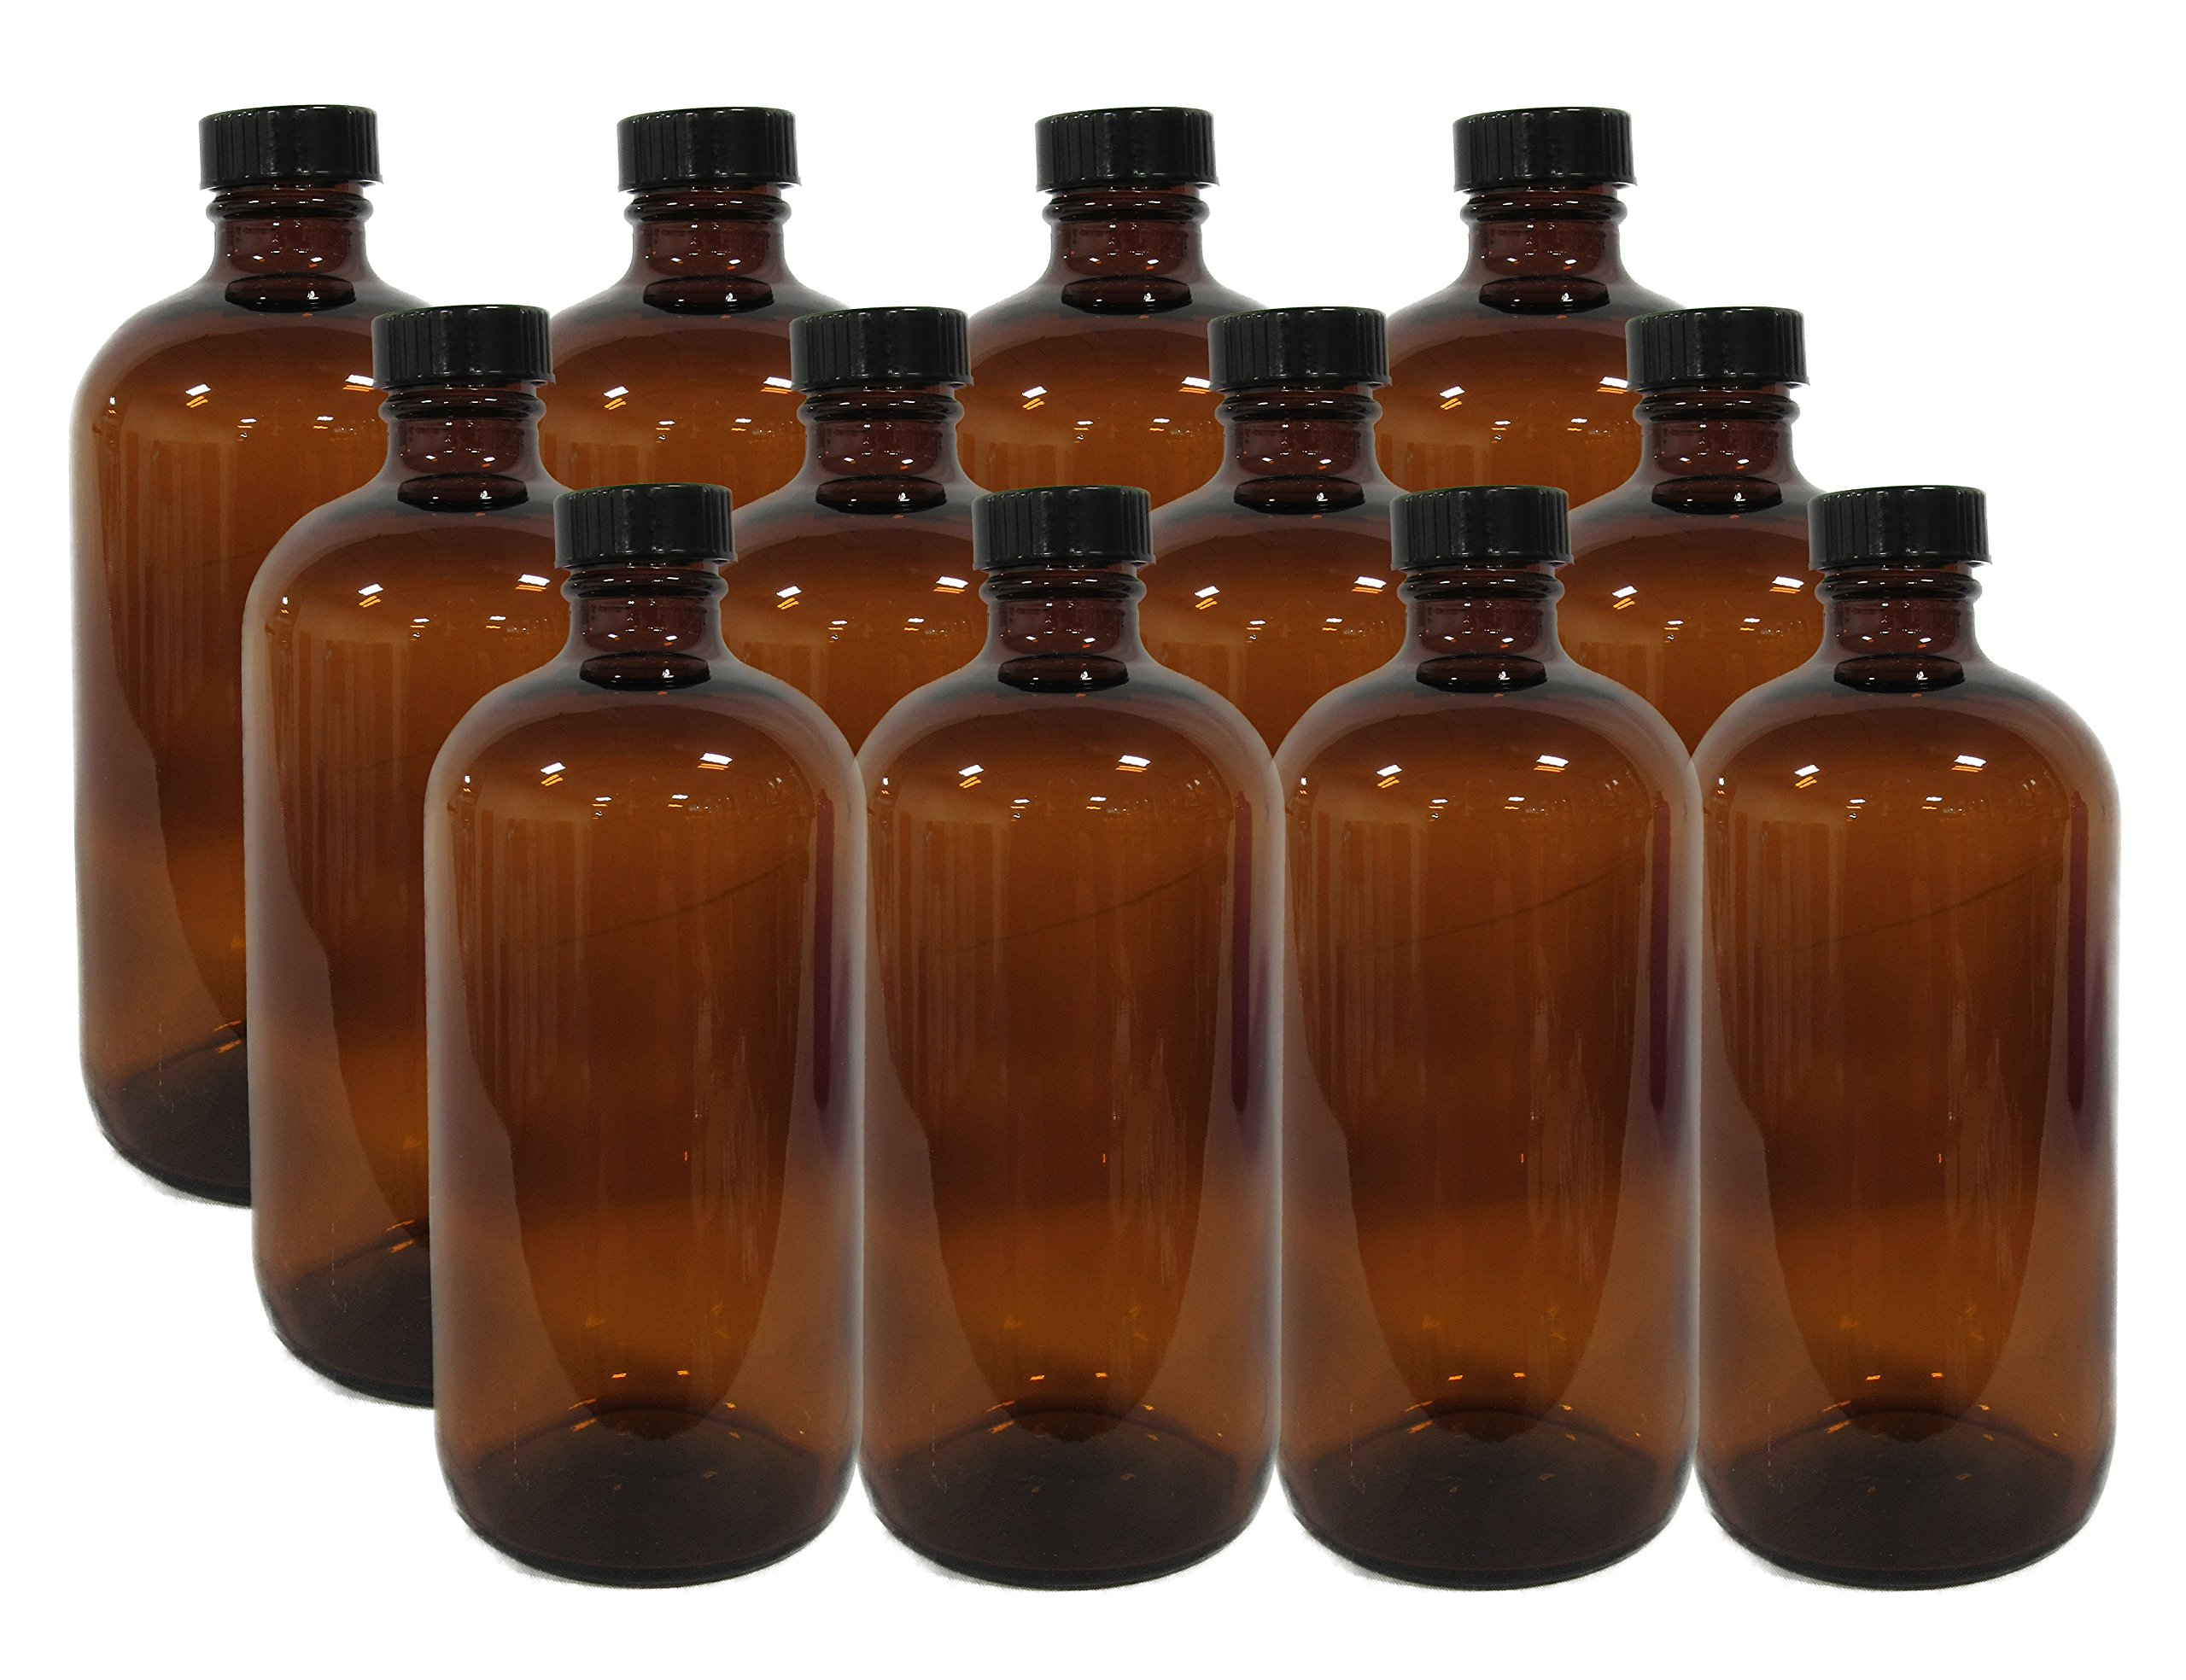 12 Pack 16 Ounce Boston Round Glass Bottles with cap (Amber) by MagJo Naturals